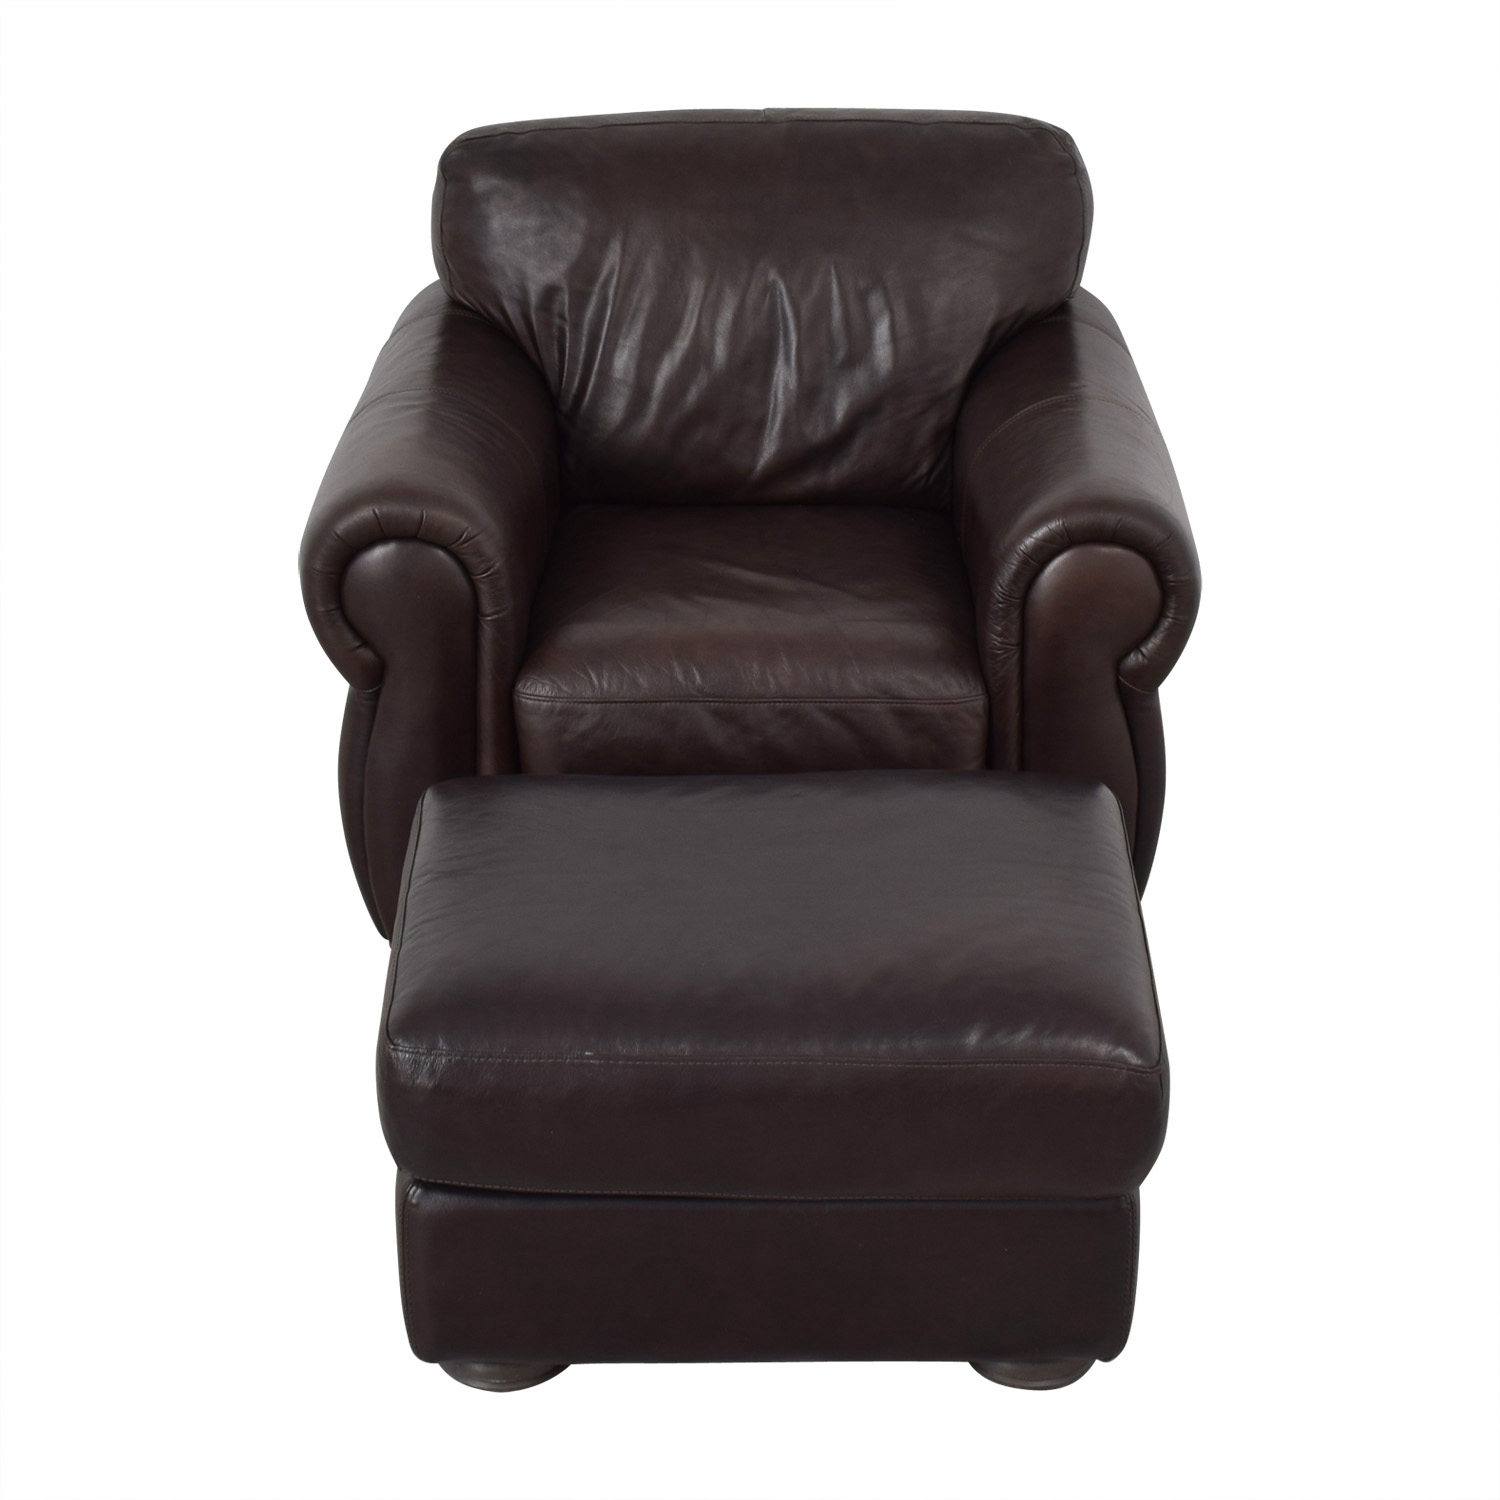 Raymour And Flanigan Molly Accent Chair: Raymour & Flanigan Raymour & Flanigan Brown